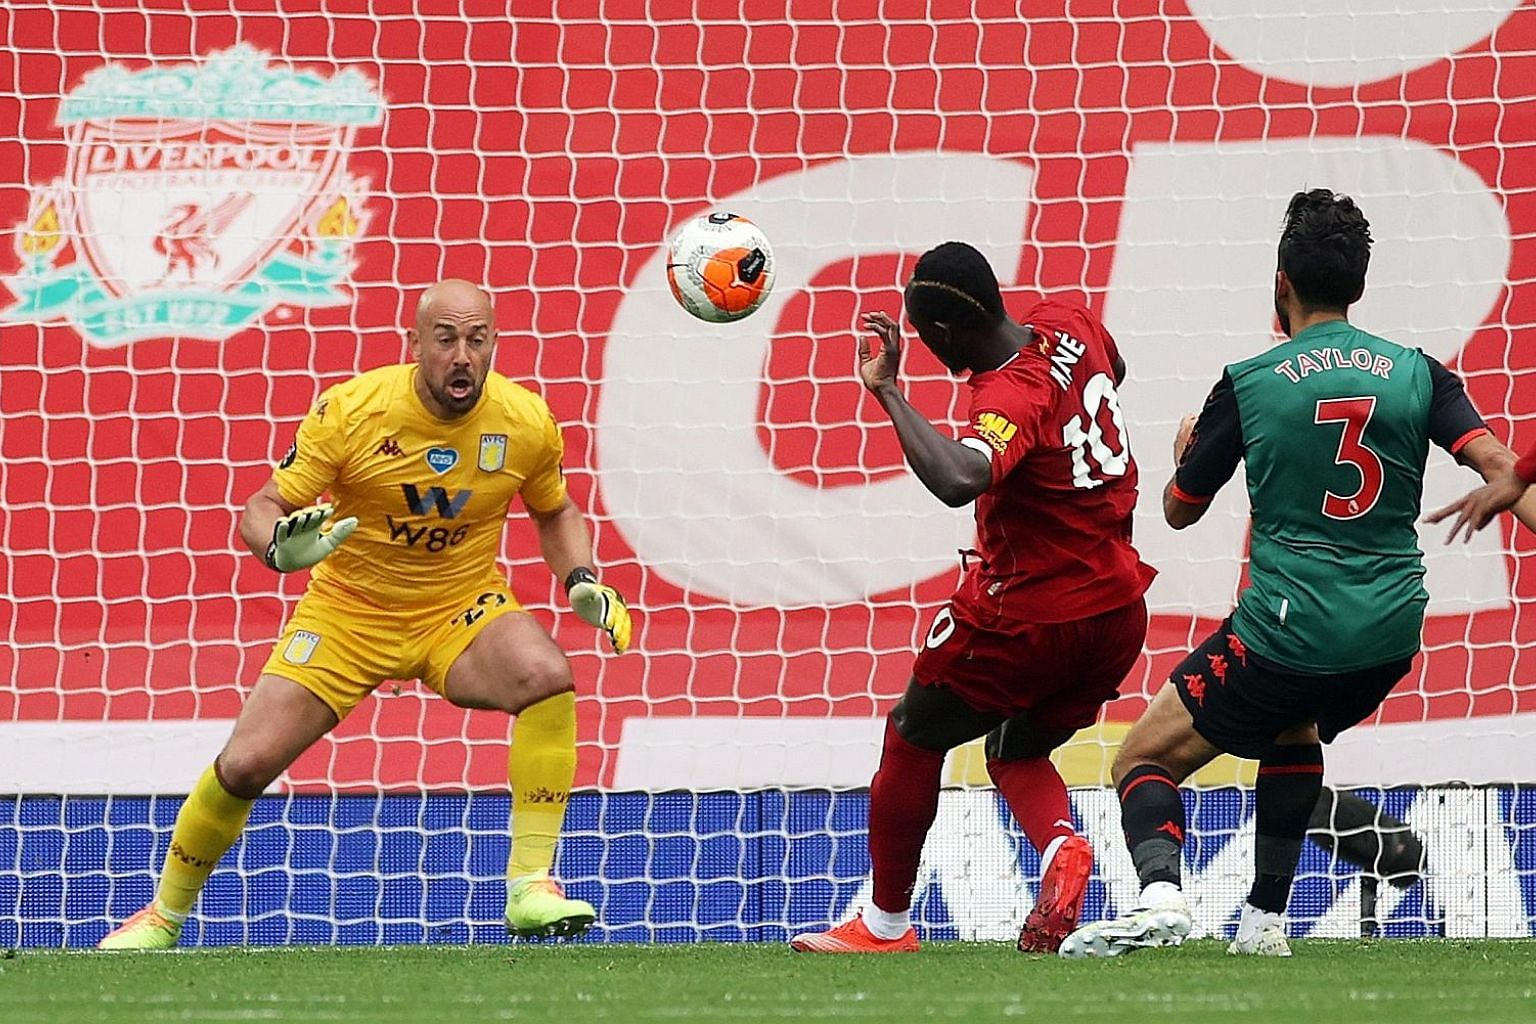 Liverpool's Sadio Mane scoring past goalkeeper Pepe Reina for a sixth goal in his past five Premier League appearances against Aston Villa. Curtis Jones sealed the 2-0 win late on. PHOTO: REUTERS